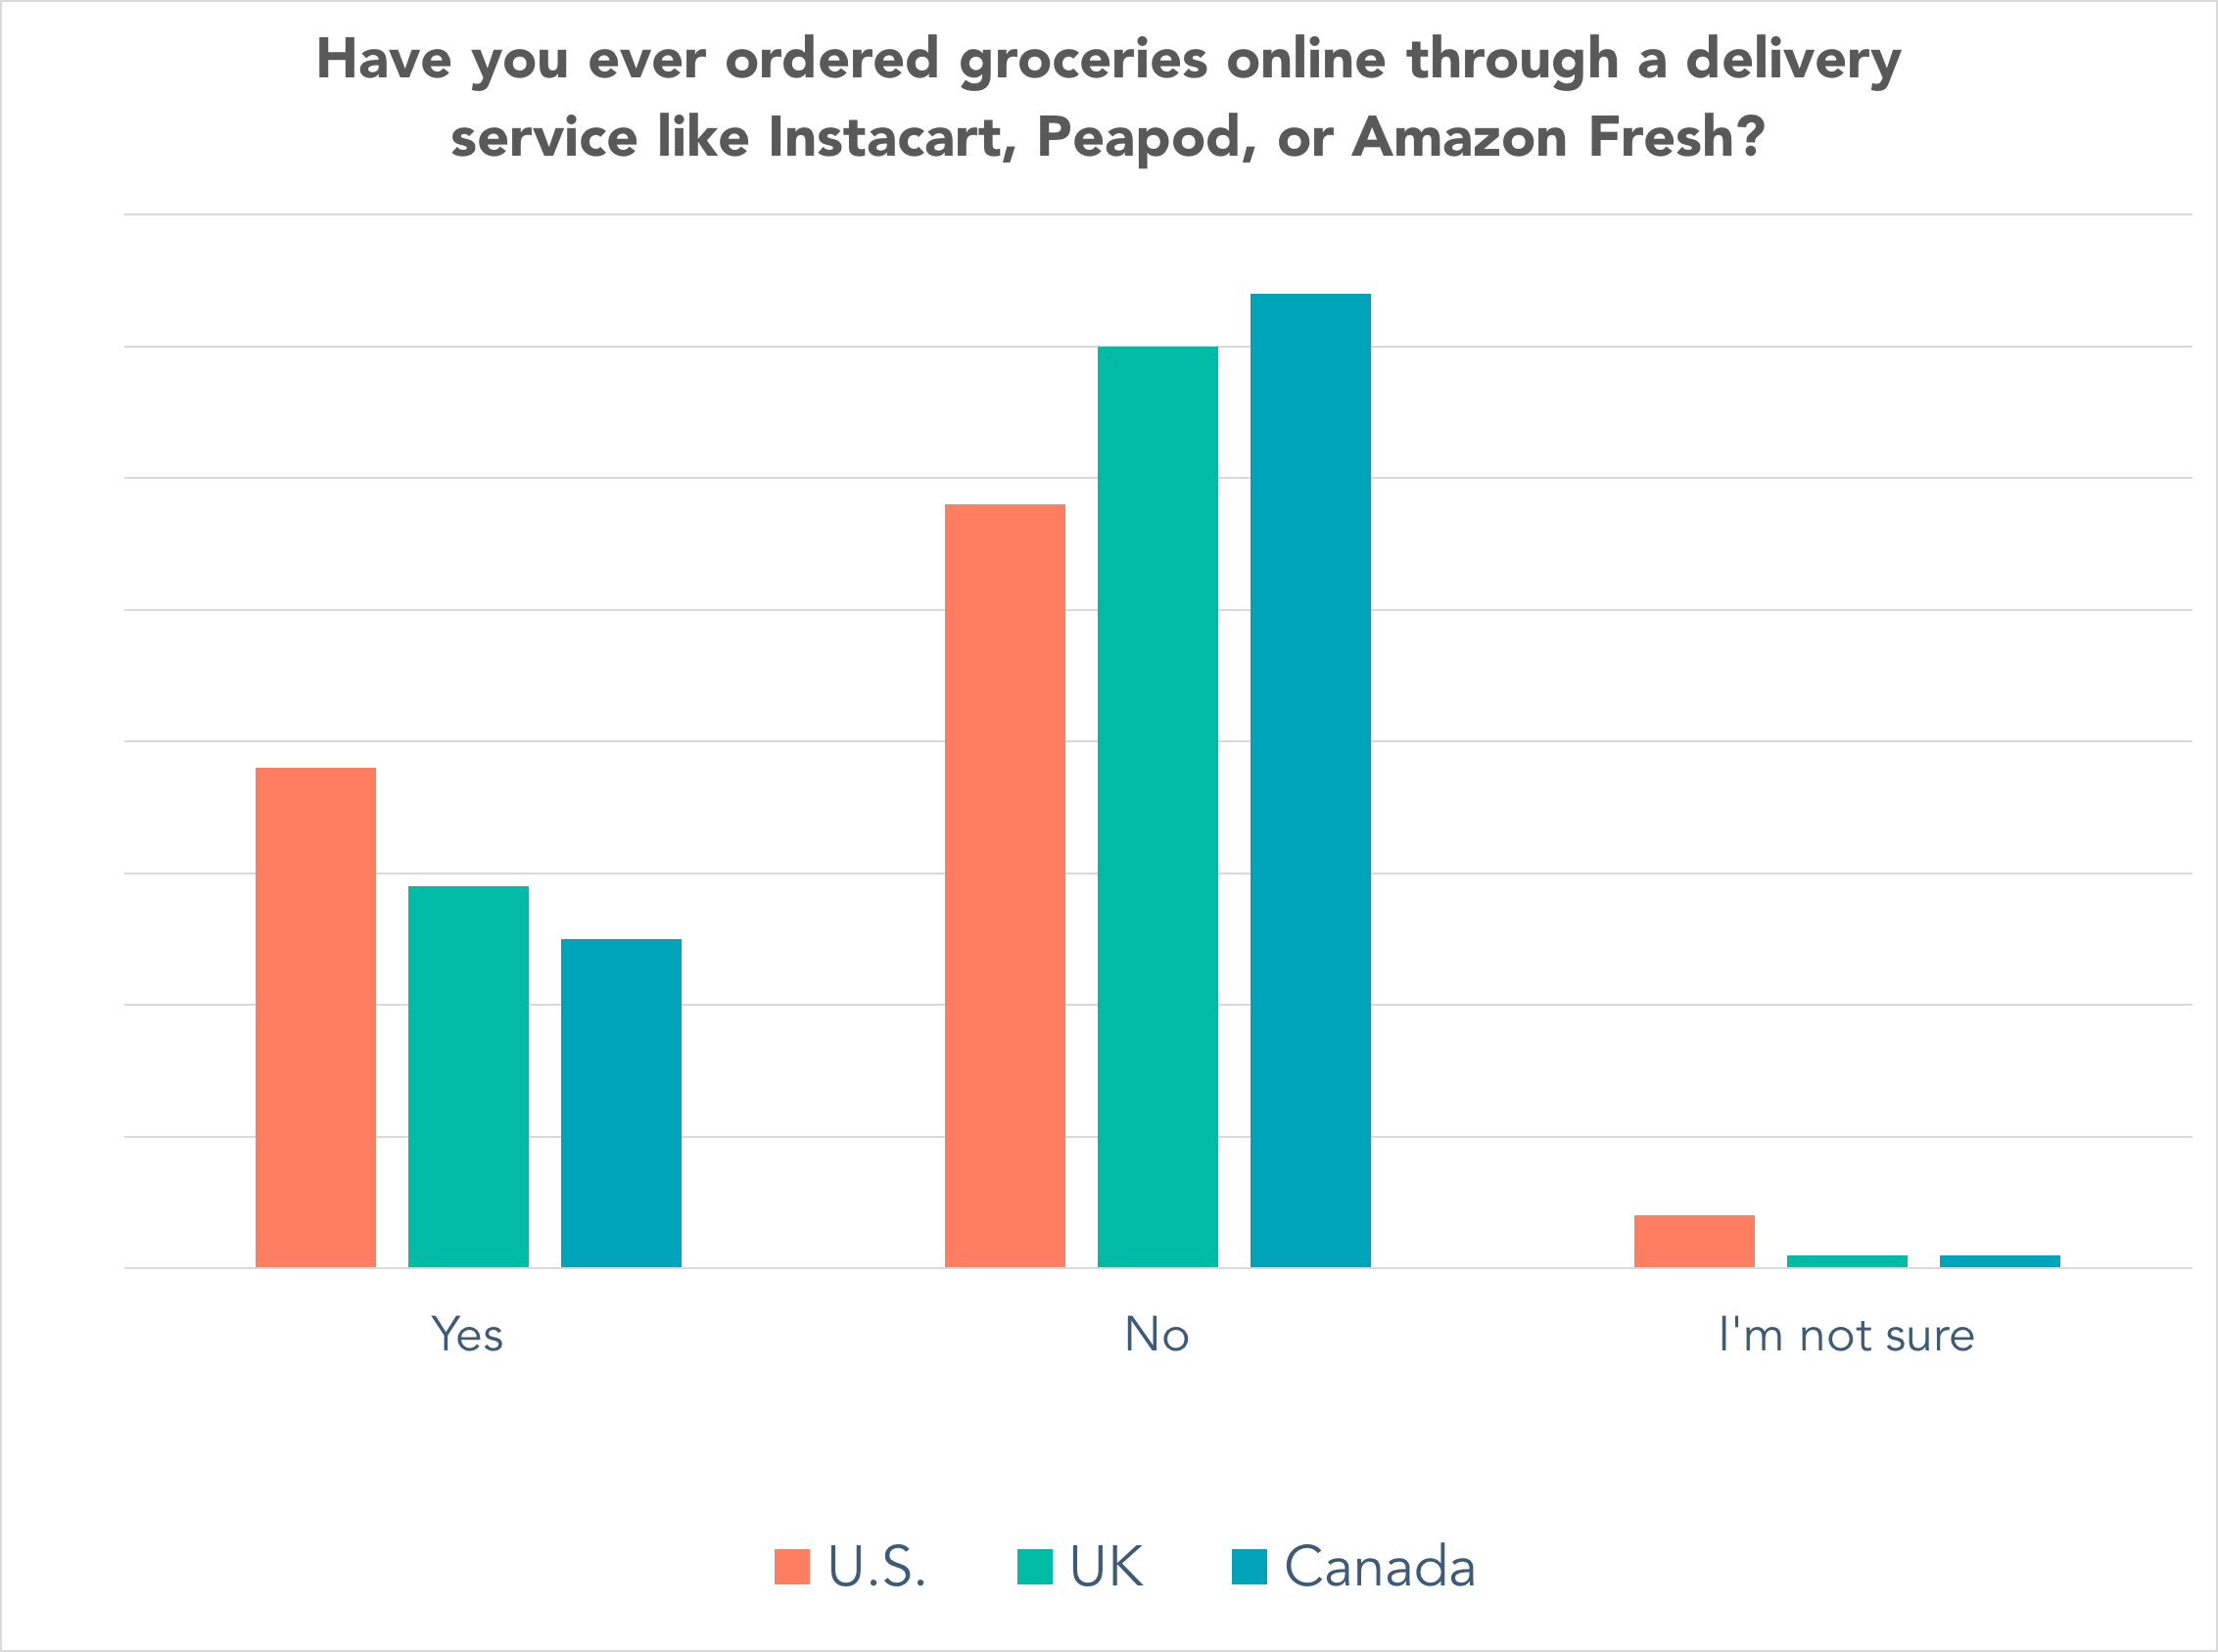 By region -- Have you ever ordered groceries online through a delivery service like Instacart, Peapod, or Amazon Fresh?